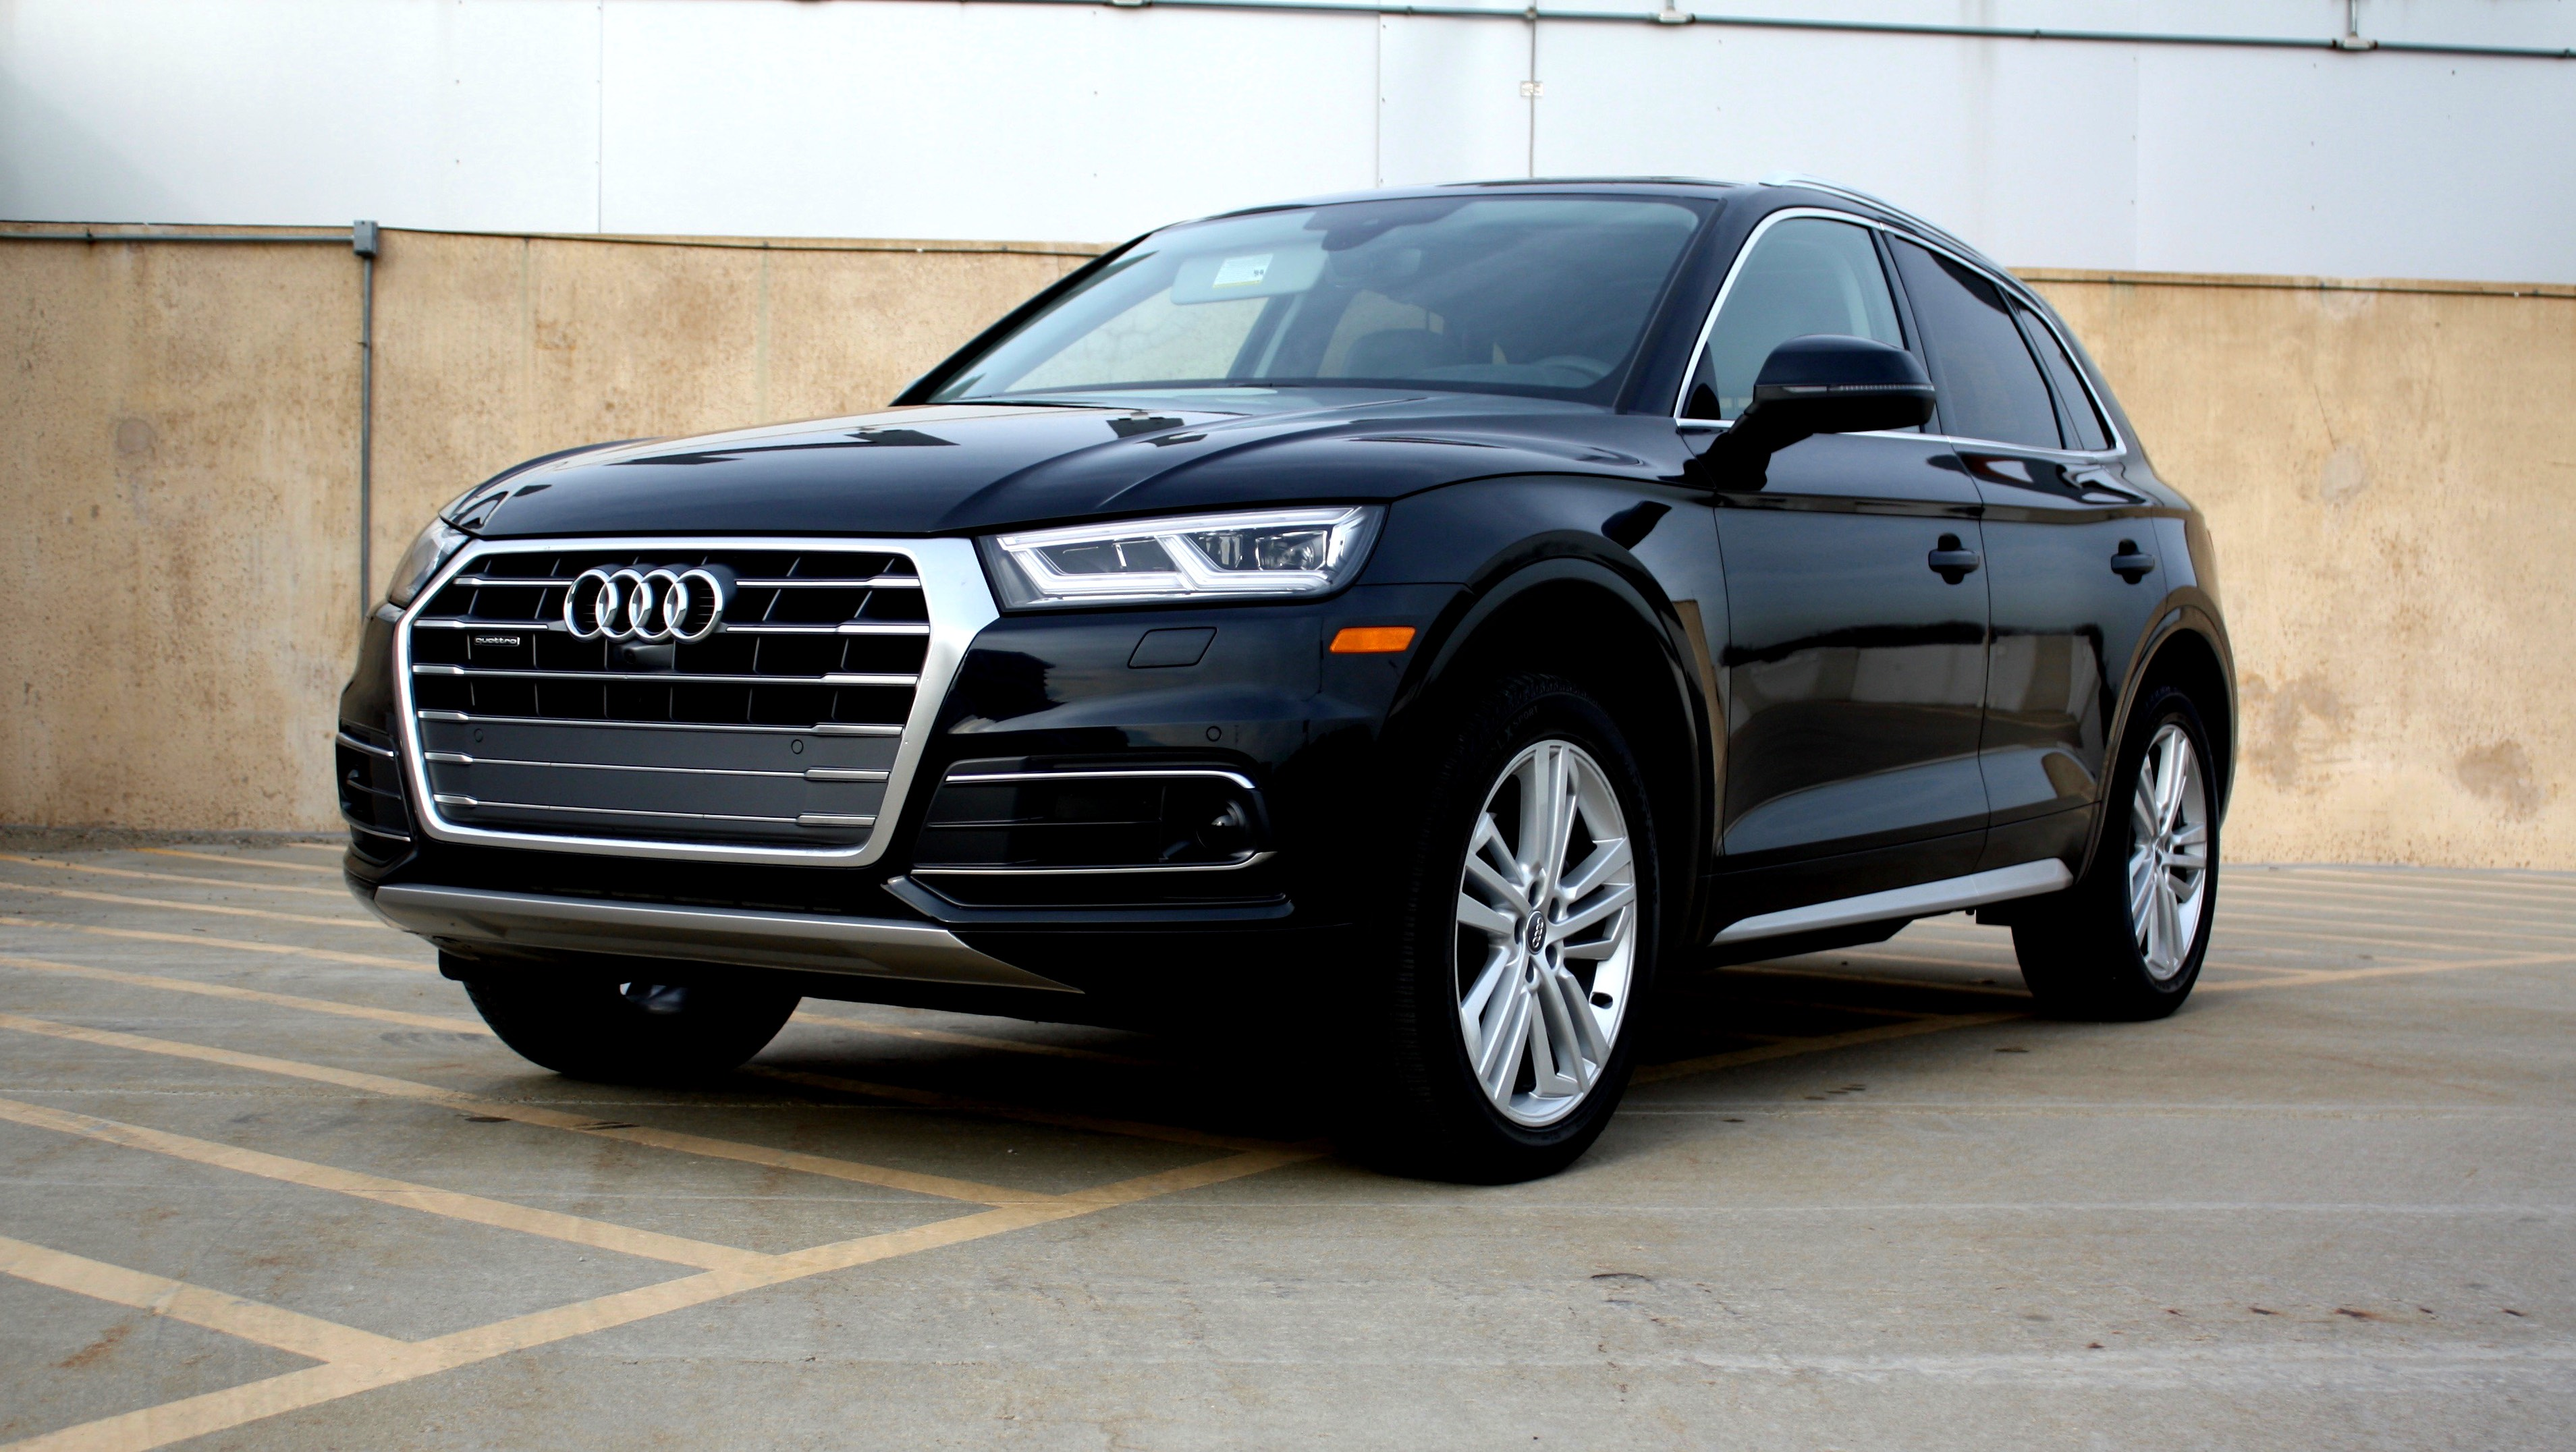 New 2018 Audi Q5 - New Car Release Date and Review 2018 | mygirlfriendscloset